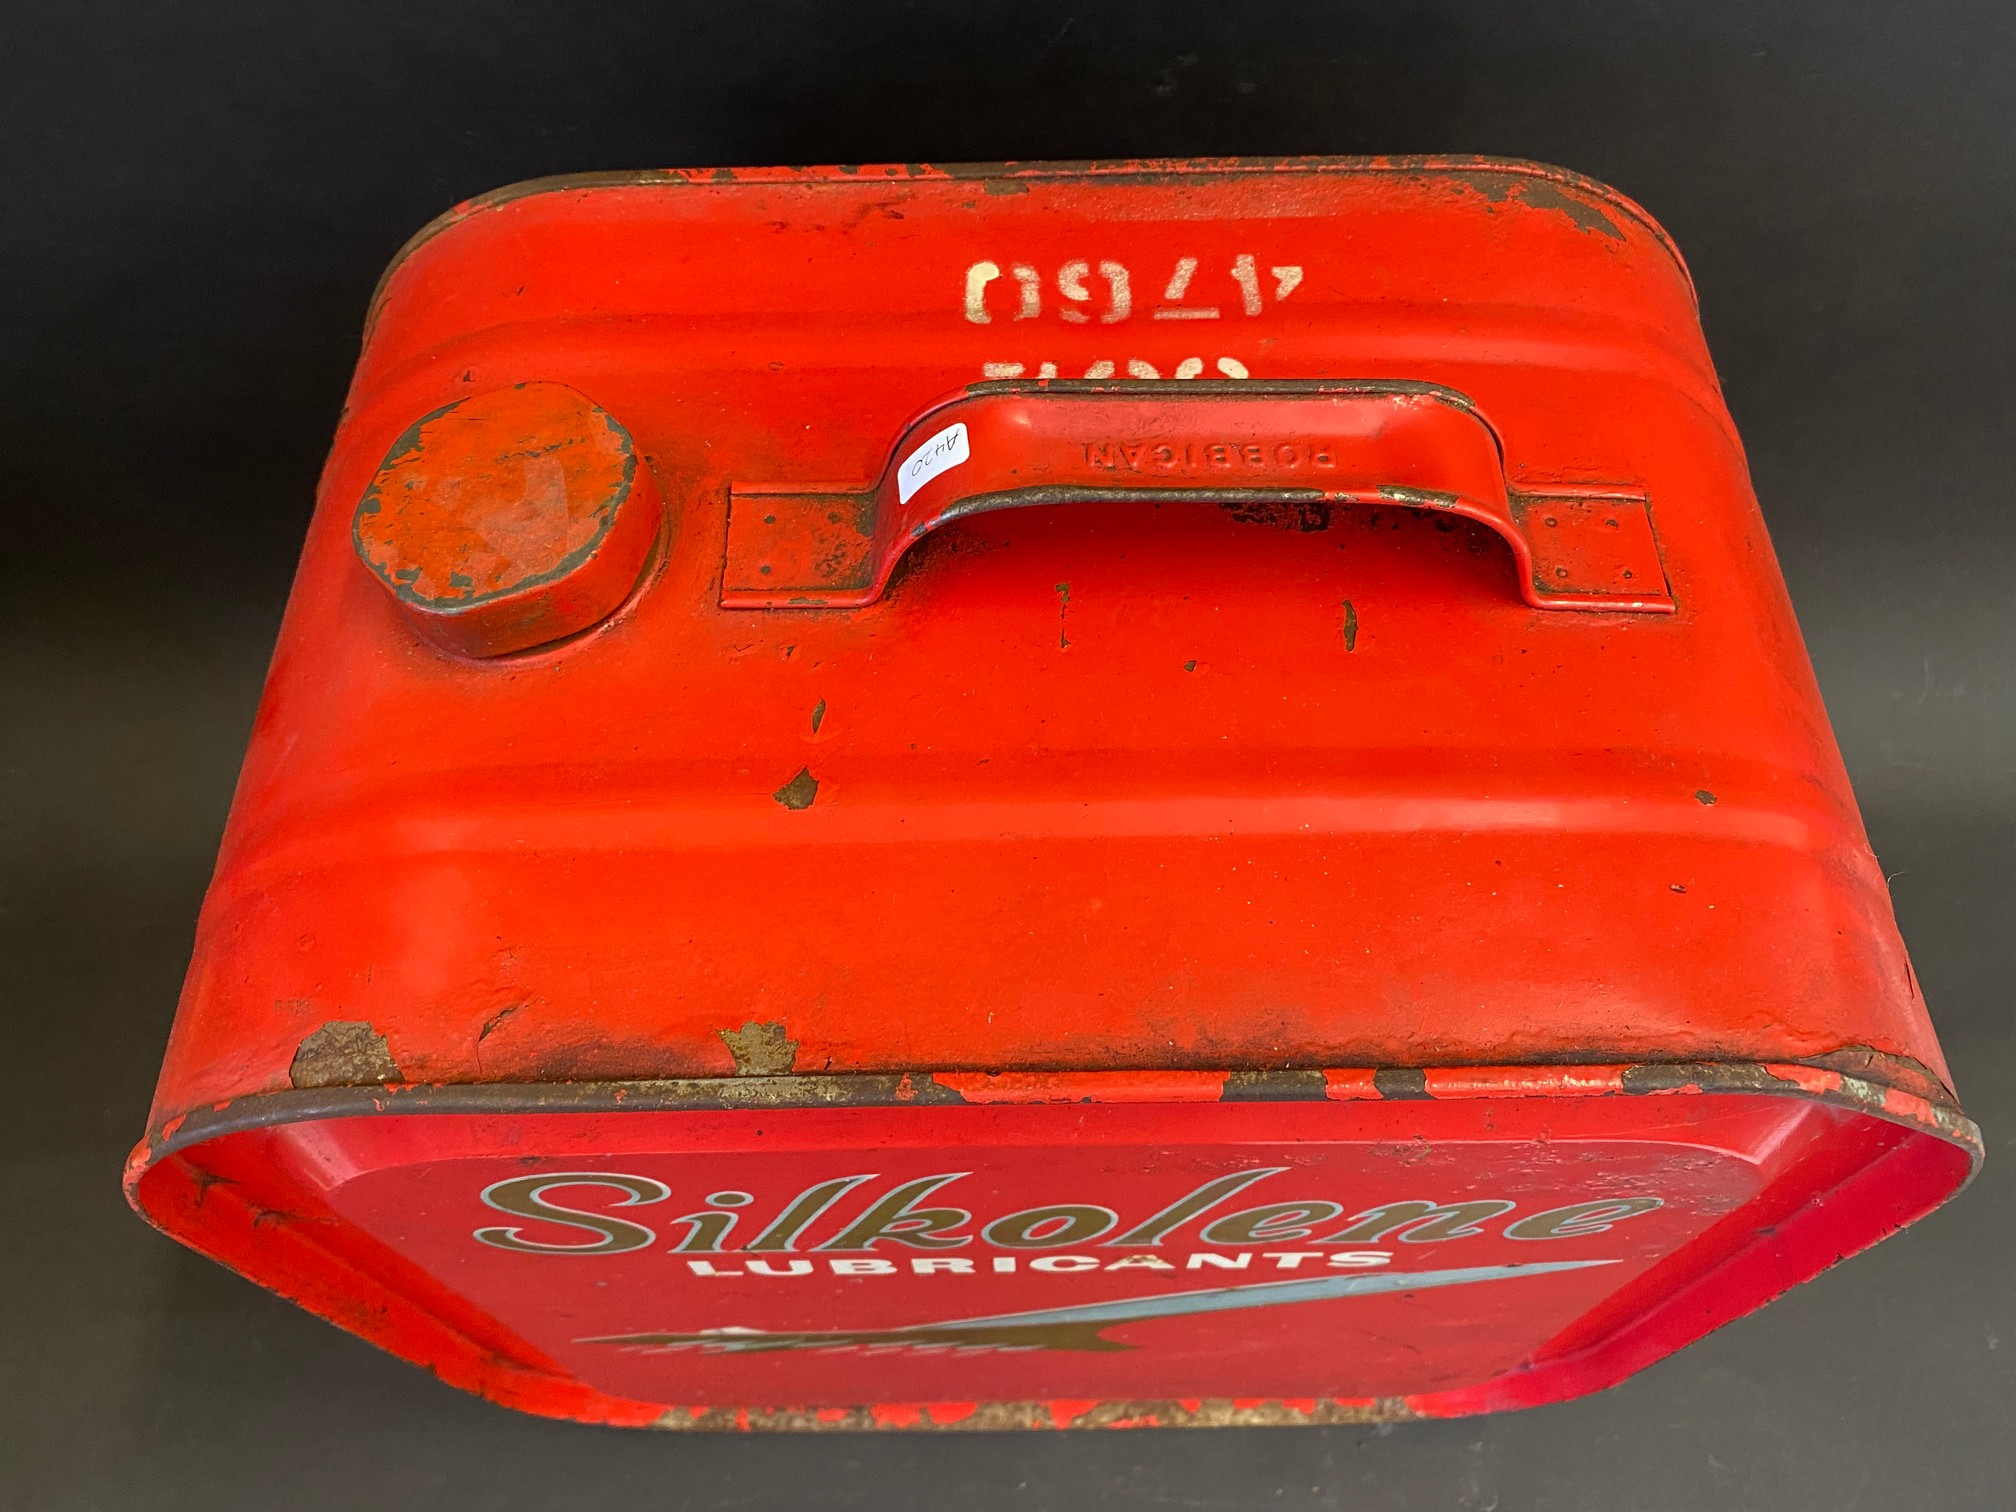 A Silkolene Lubricants five gallon drum with an image of Concorde to either side. - Image 3 of 4